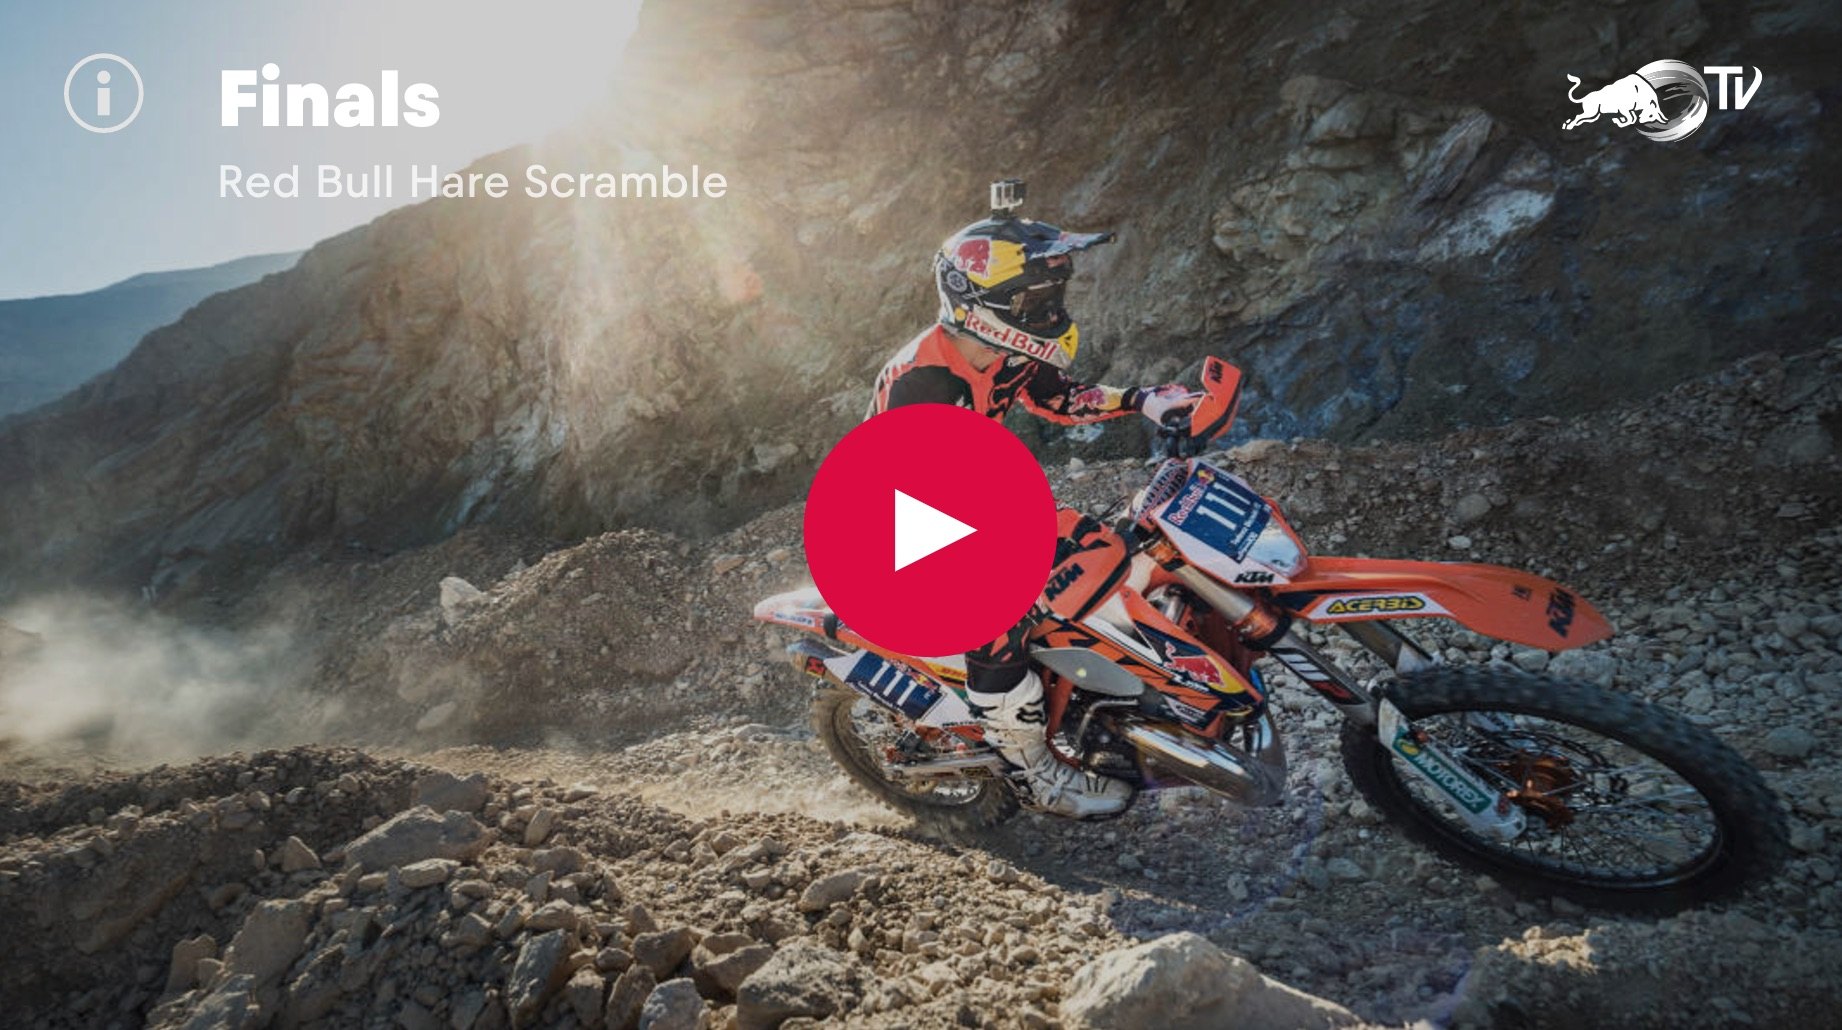 ErzbergRodeo 2017 en directo, sigue aquí la Red Bull Hare Scramble